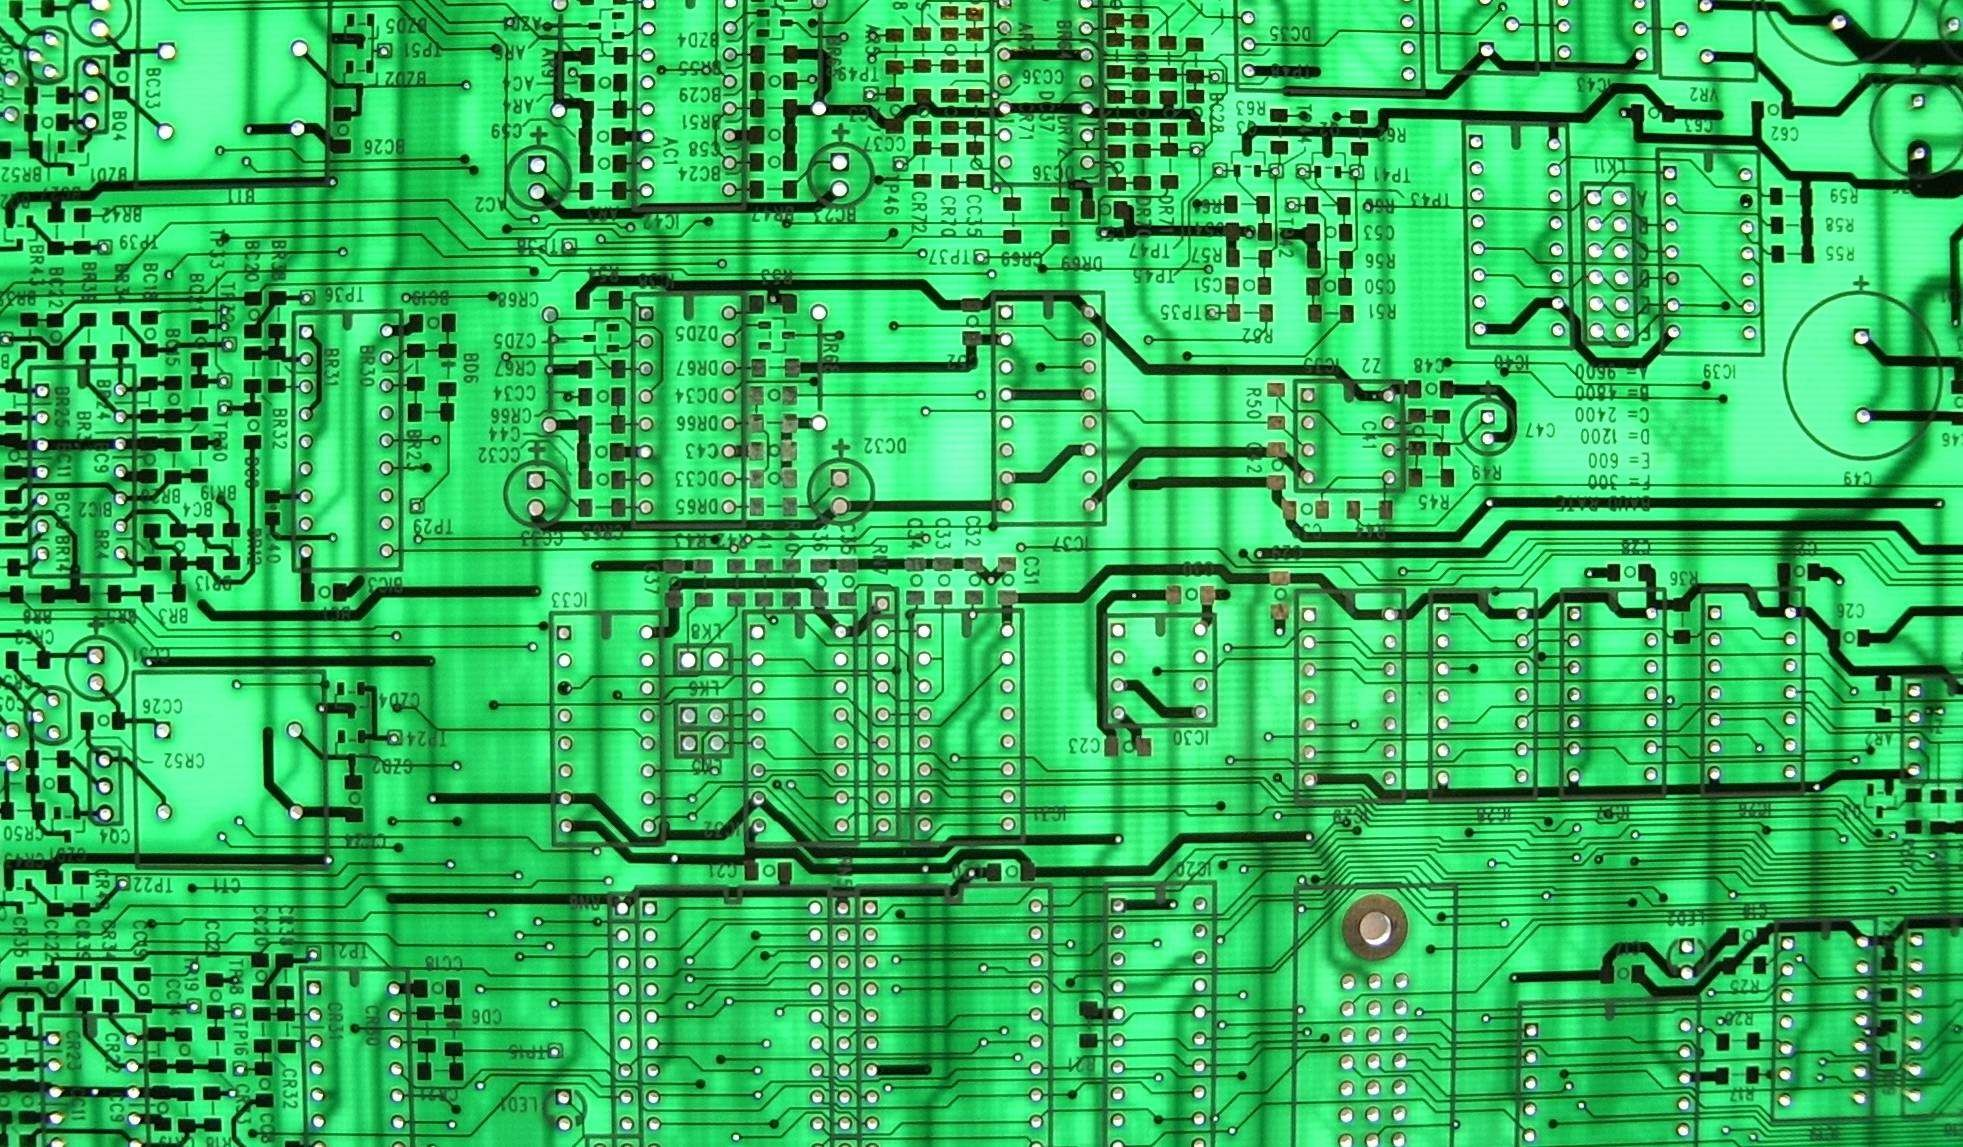 Stock image and royaltyfree Circuit Board Backgrounds Wallpapers)